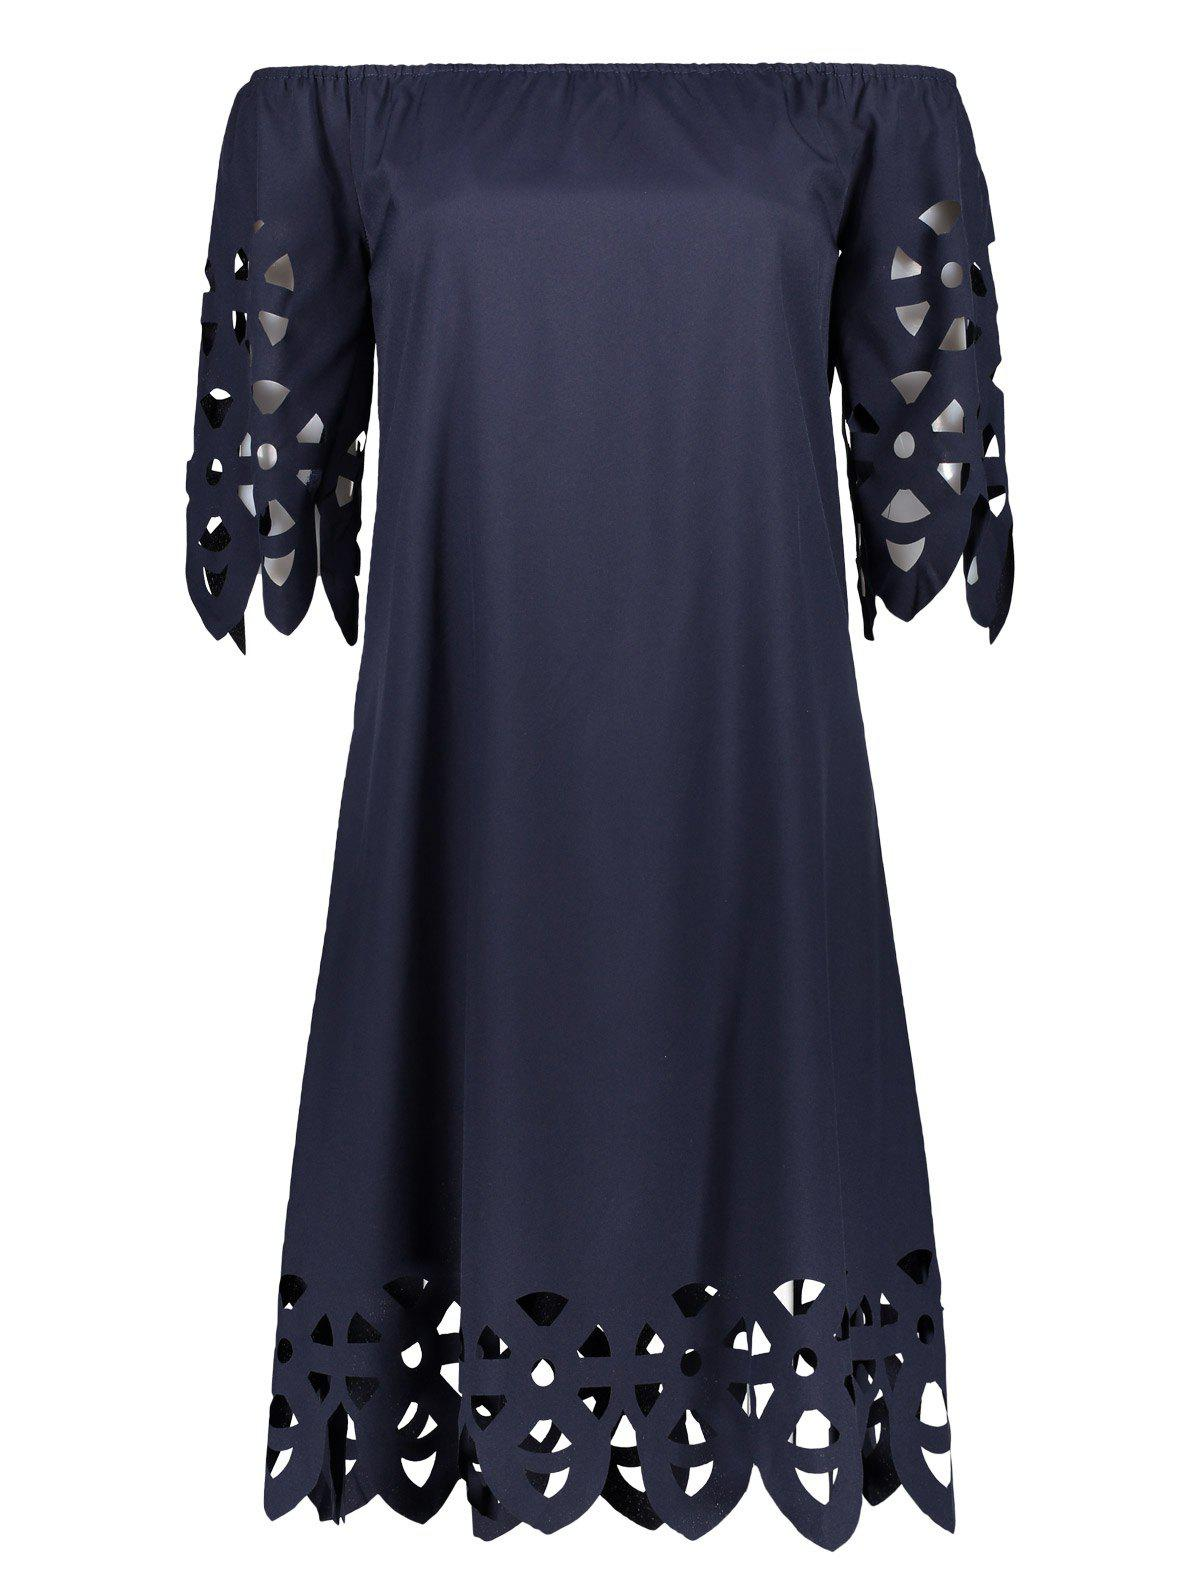 Off The Shoulder évider Mini Robe chasuble - Bleu Cadette XL